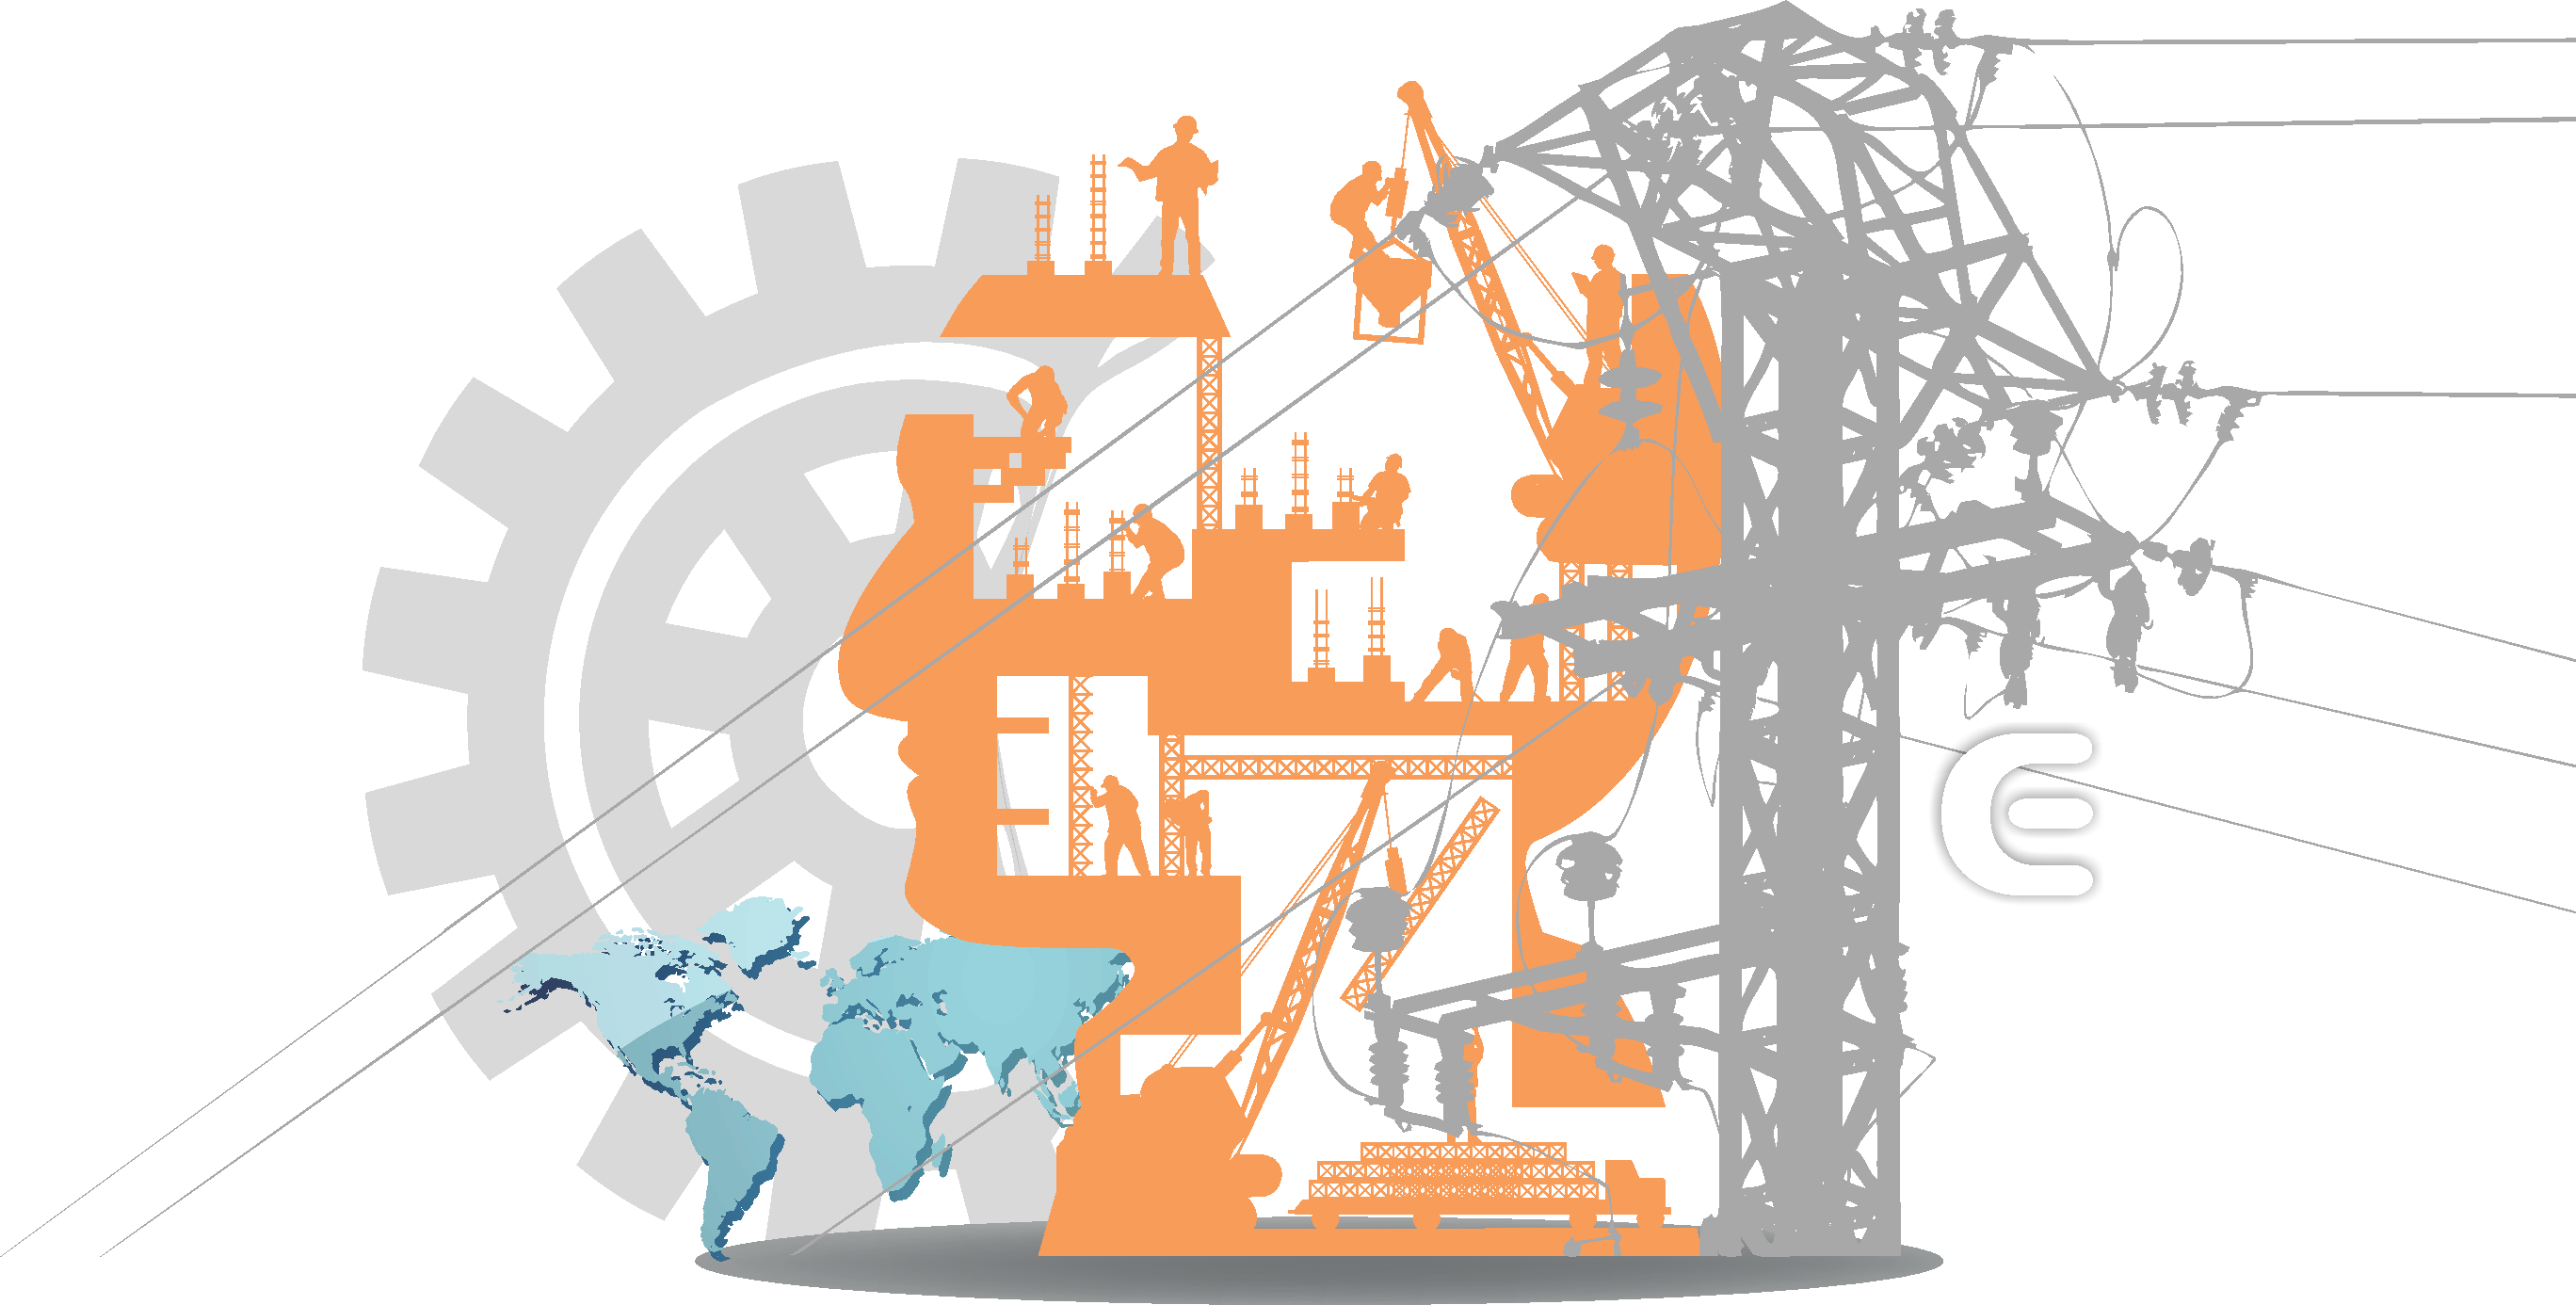 Electric power systems co. Electrical clipart utility